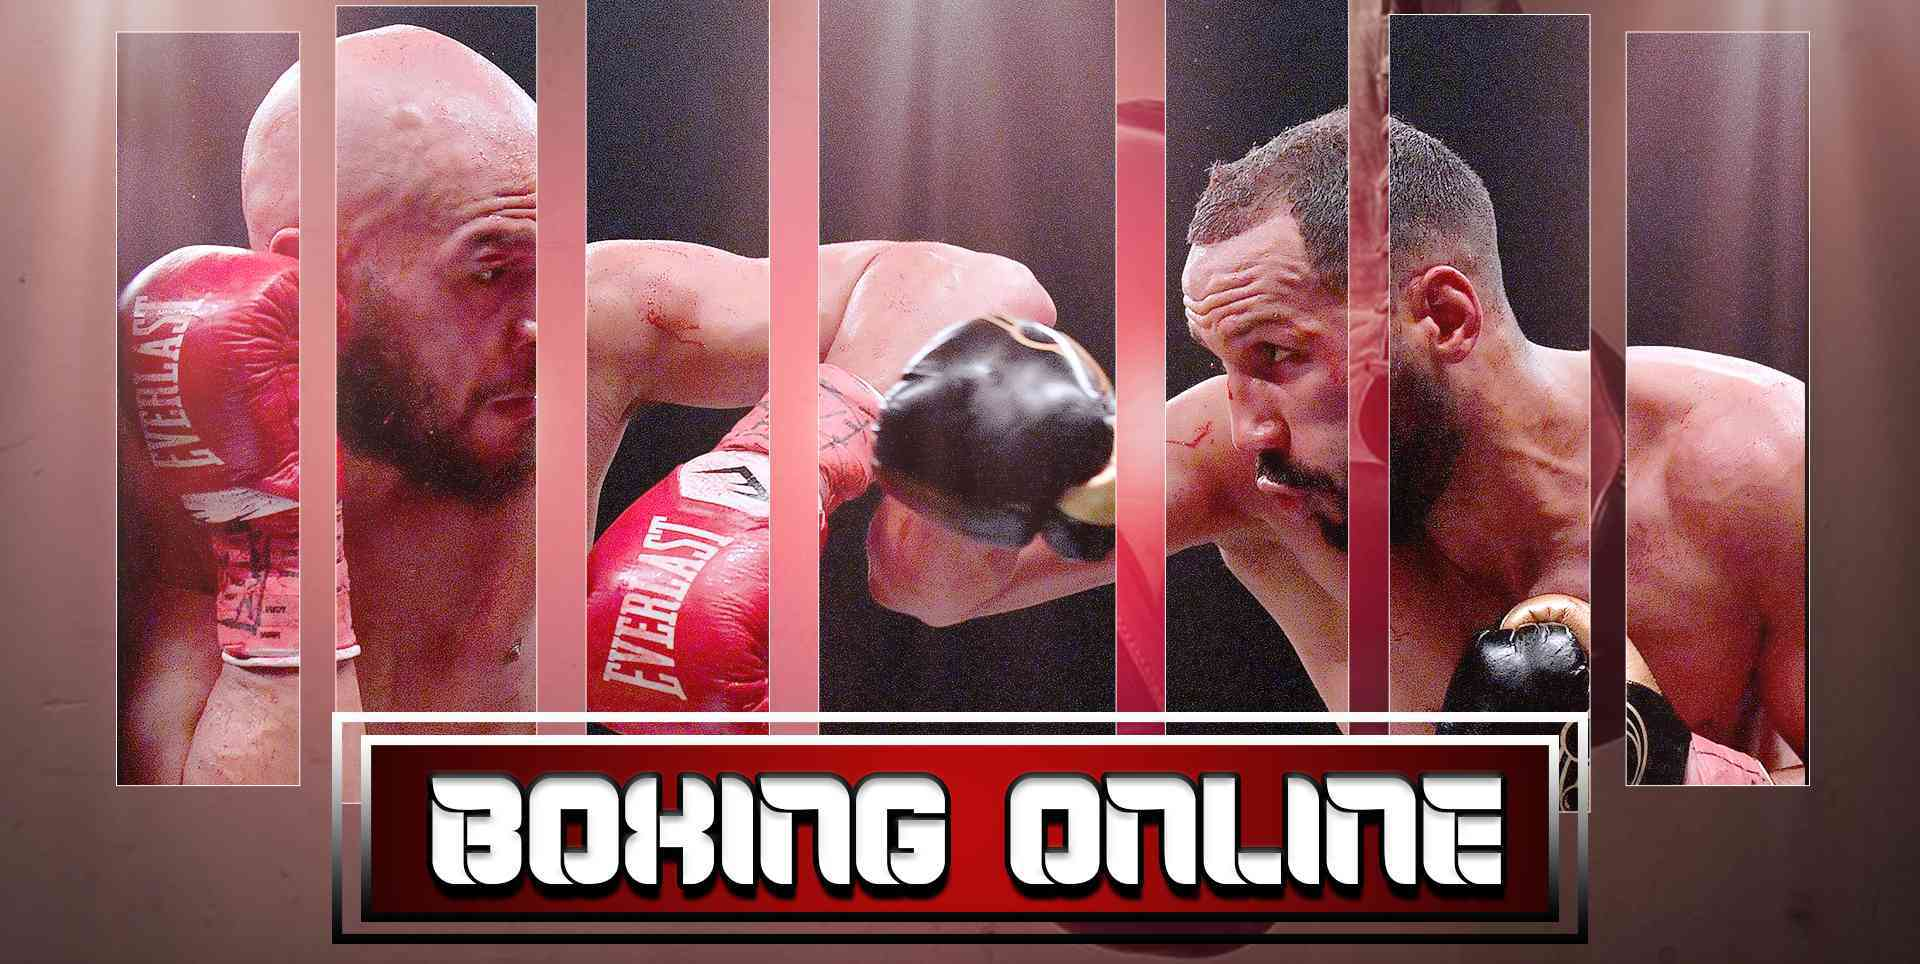 watch Zachary Ochoa vs Luis Joel Gonzalez Online